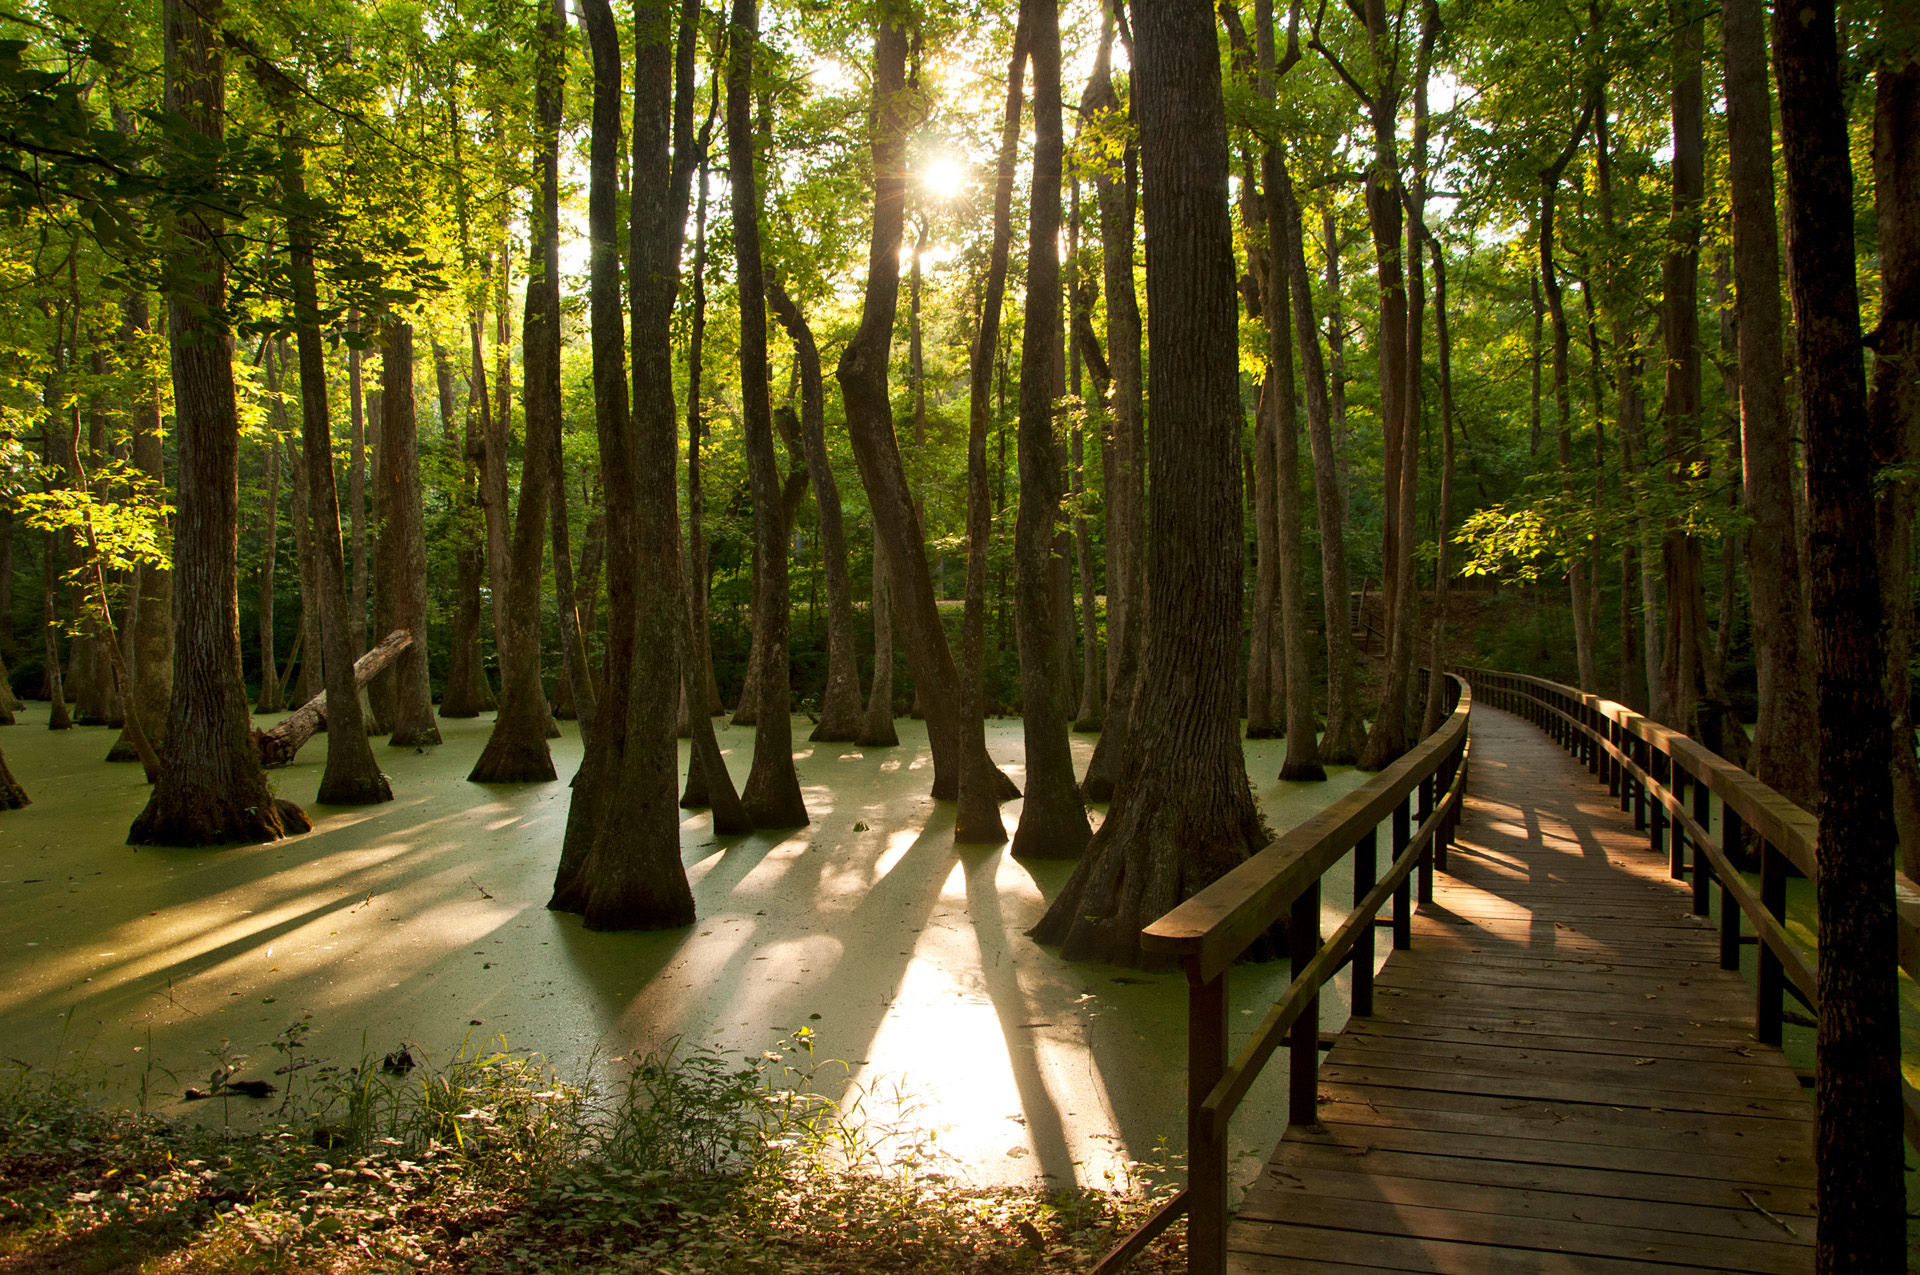 Natchez Trace Parkway, NPS, National Park Foundation Road Trippin' guide